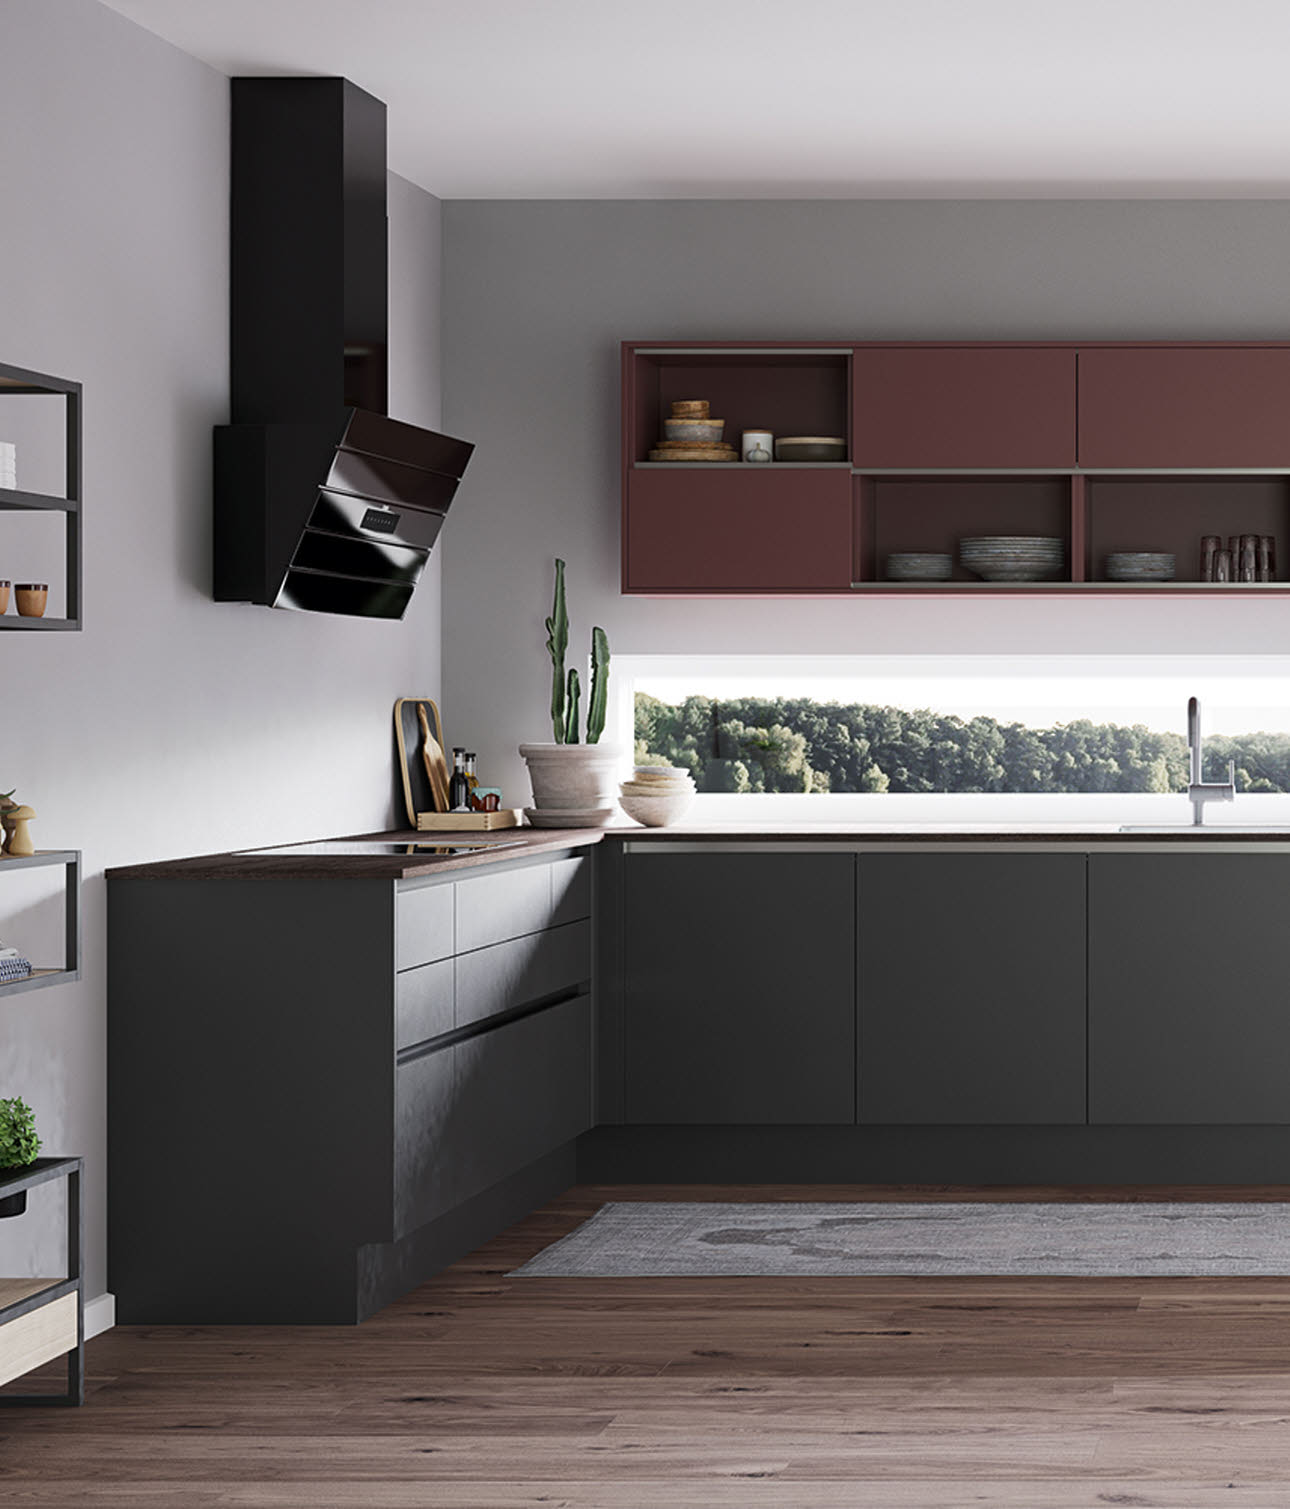 Kitchen doors » See the wide variety of quality kitchen doors from HTH